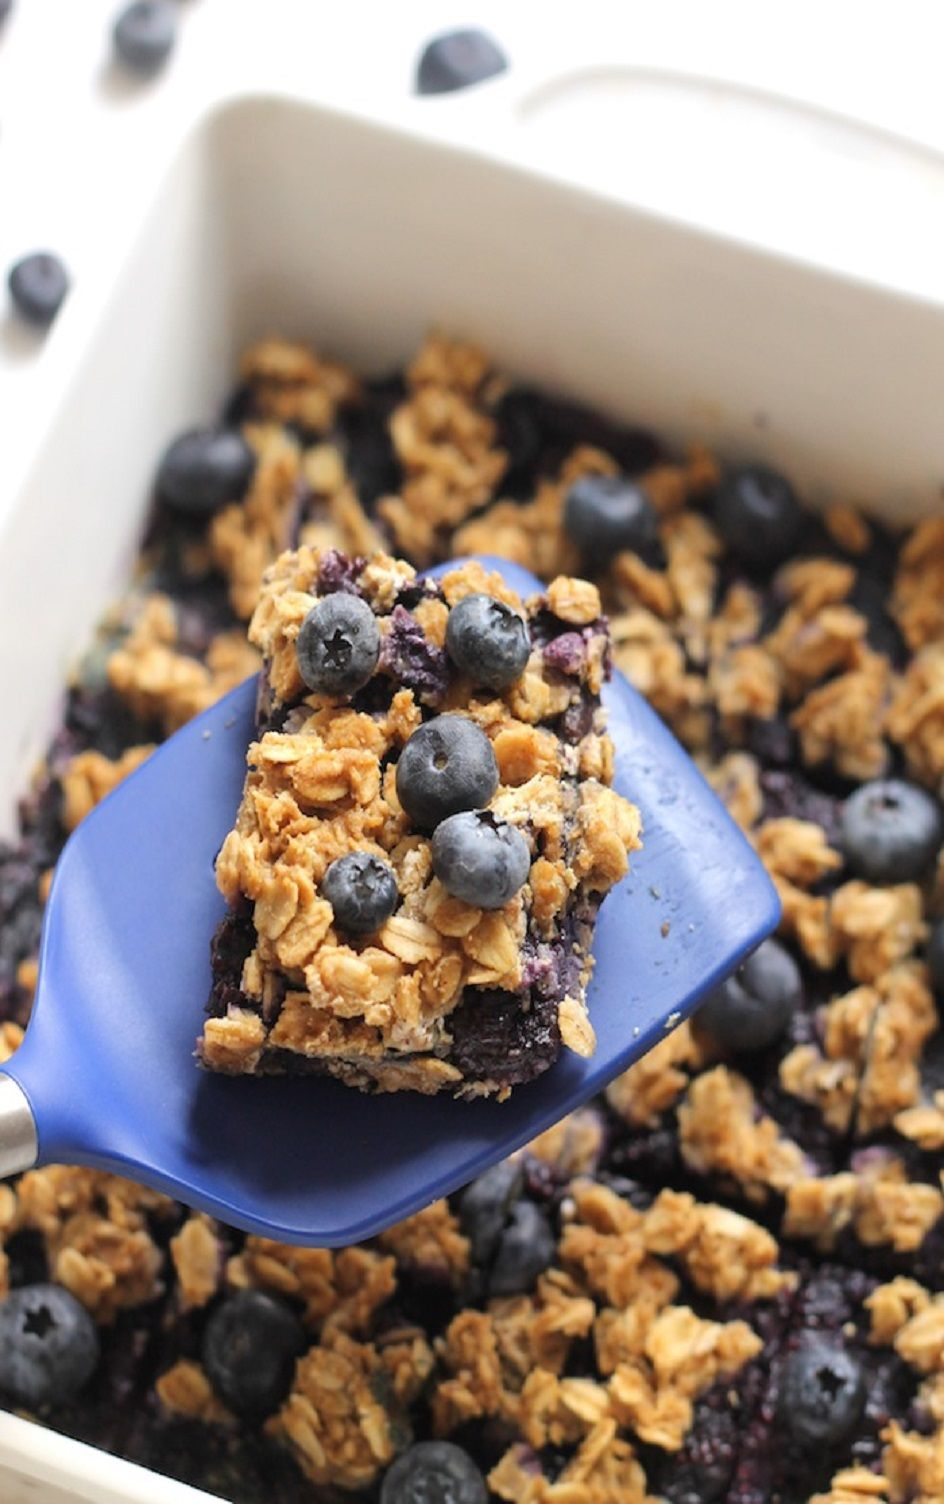 These blueberry oatmeal bars are bursting with oats, blueberries and chia seeds